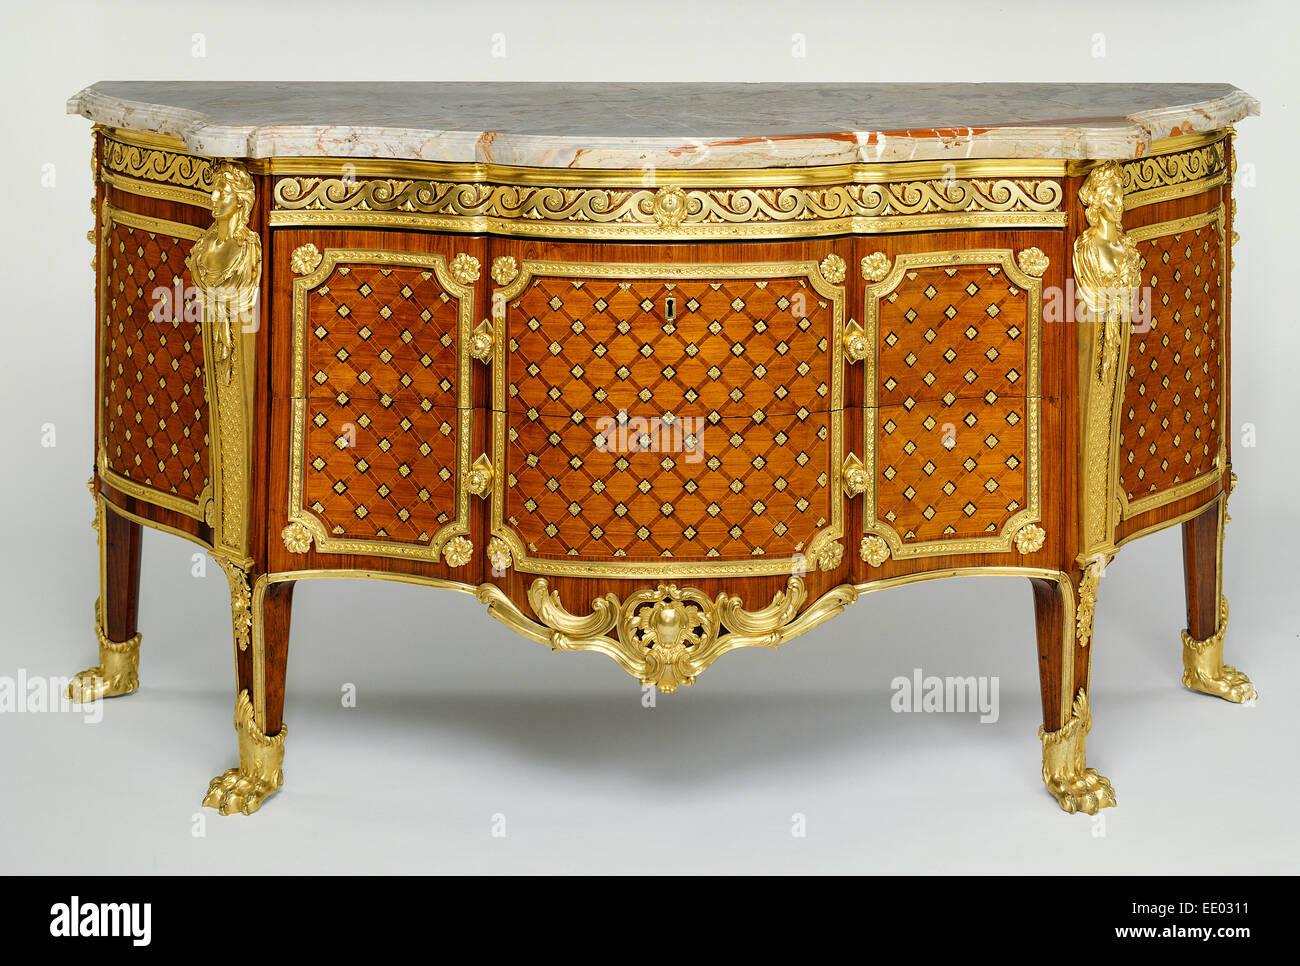 Commode gilles joubert french 1689 1775 paris for Gilles emond meuble